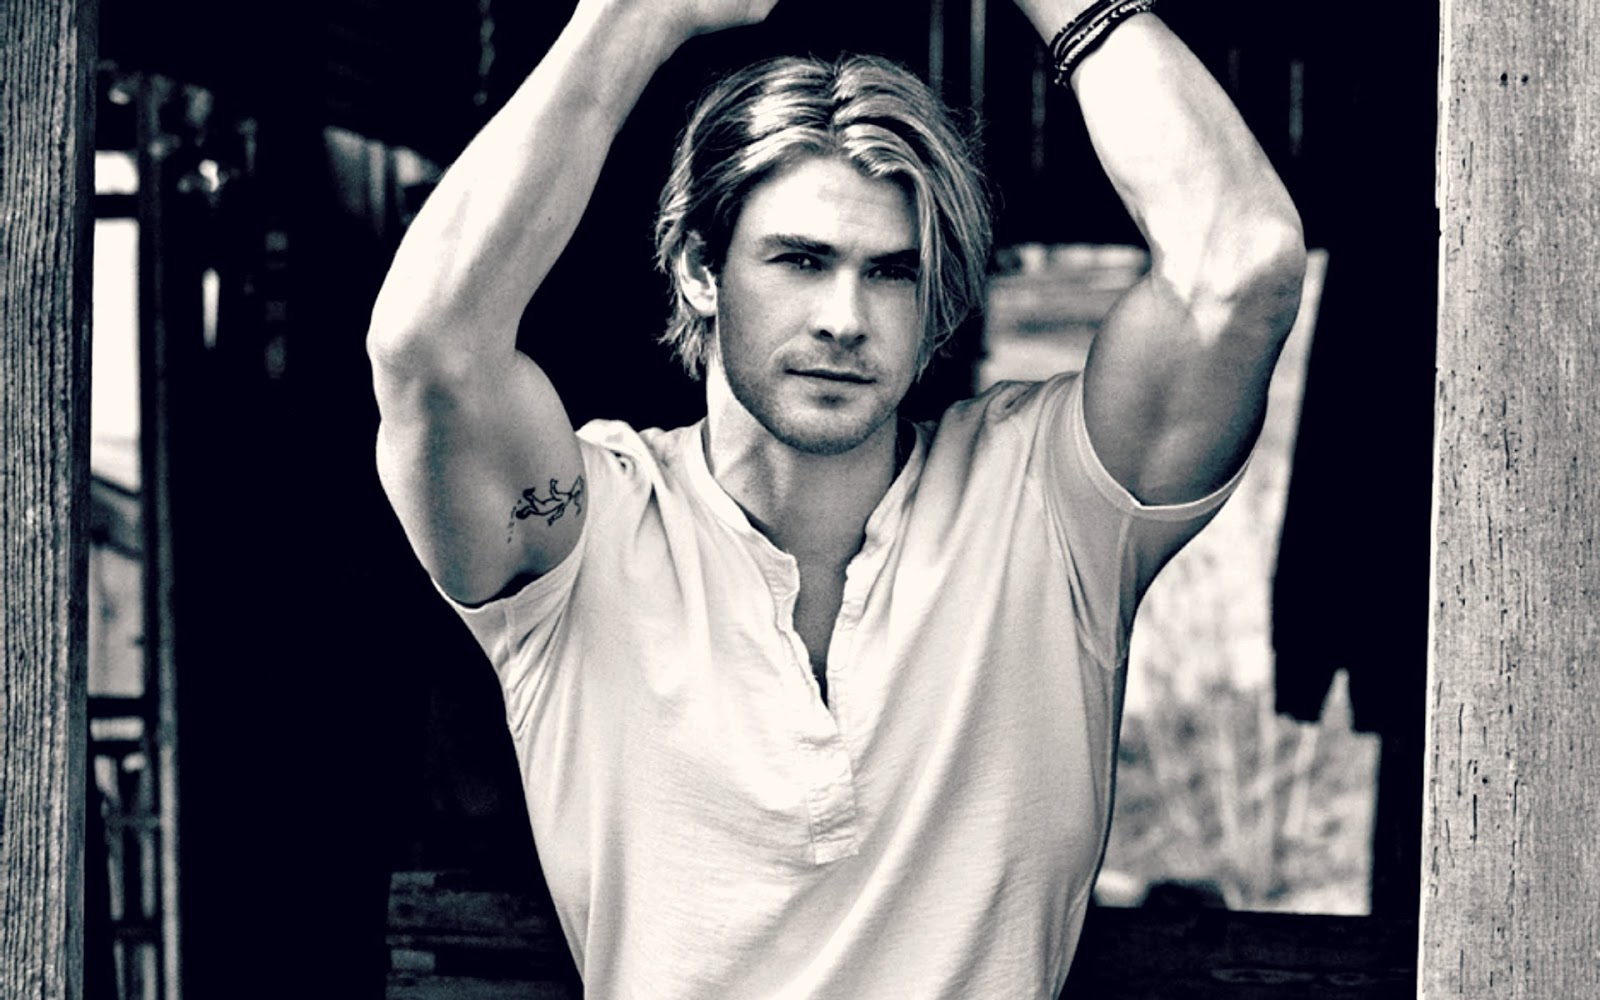 Chris hemsworth high definition picture hindi me solution - Chris hemsworth hd images ...